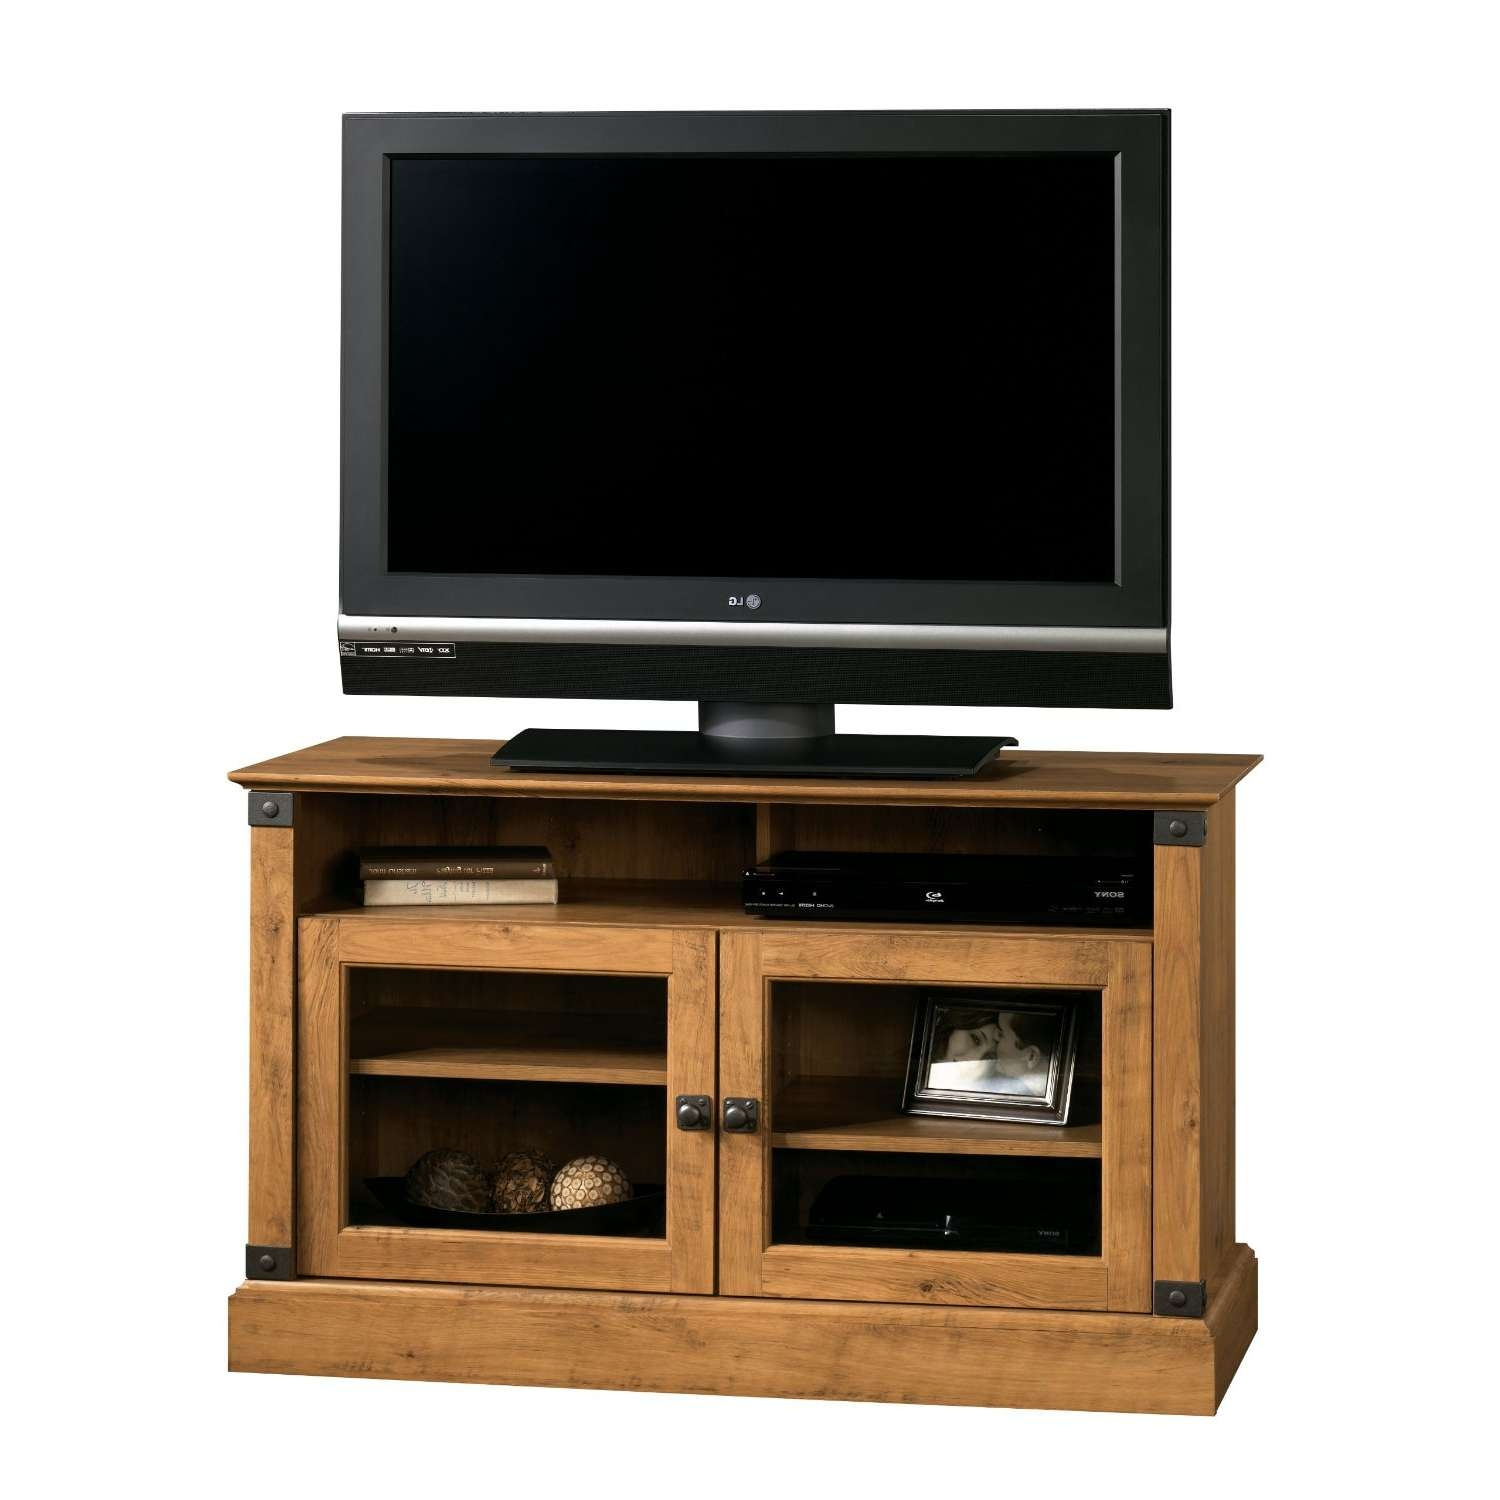 Furniture: Reclaimed Wood Tv Stand With Shelves And Drawers For Regarding Wooden Tv Cabinets (View 5 of 20)